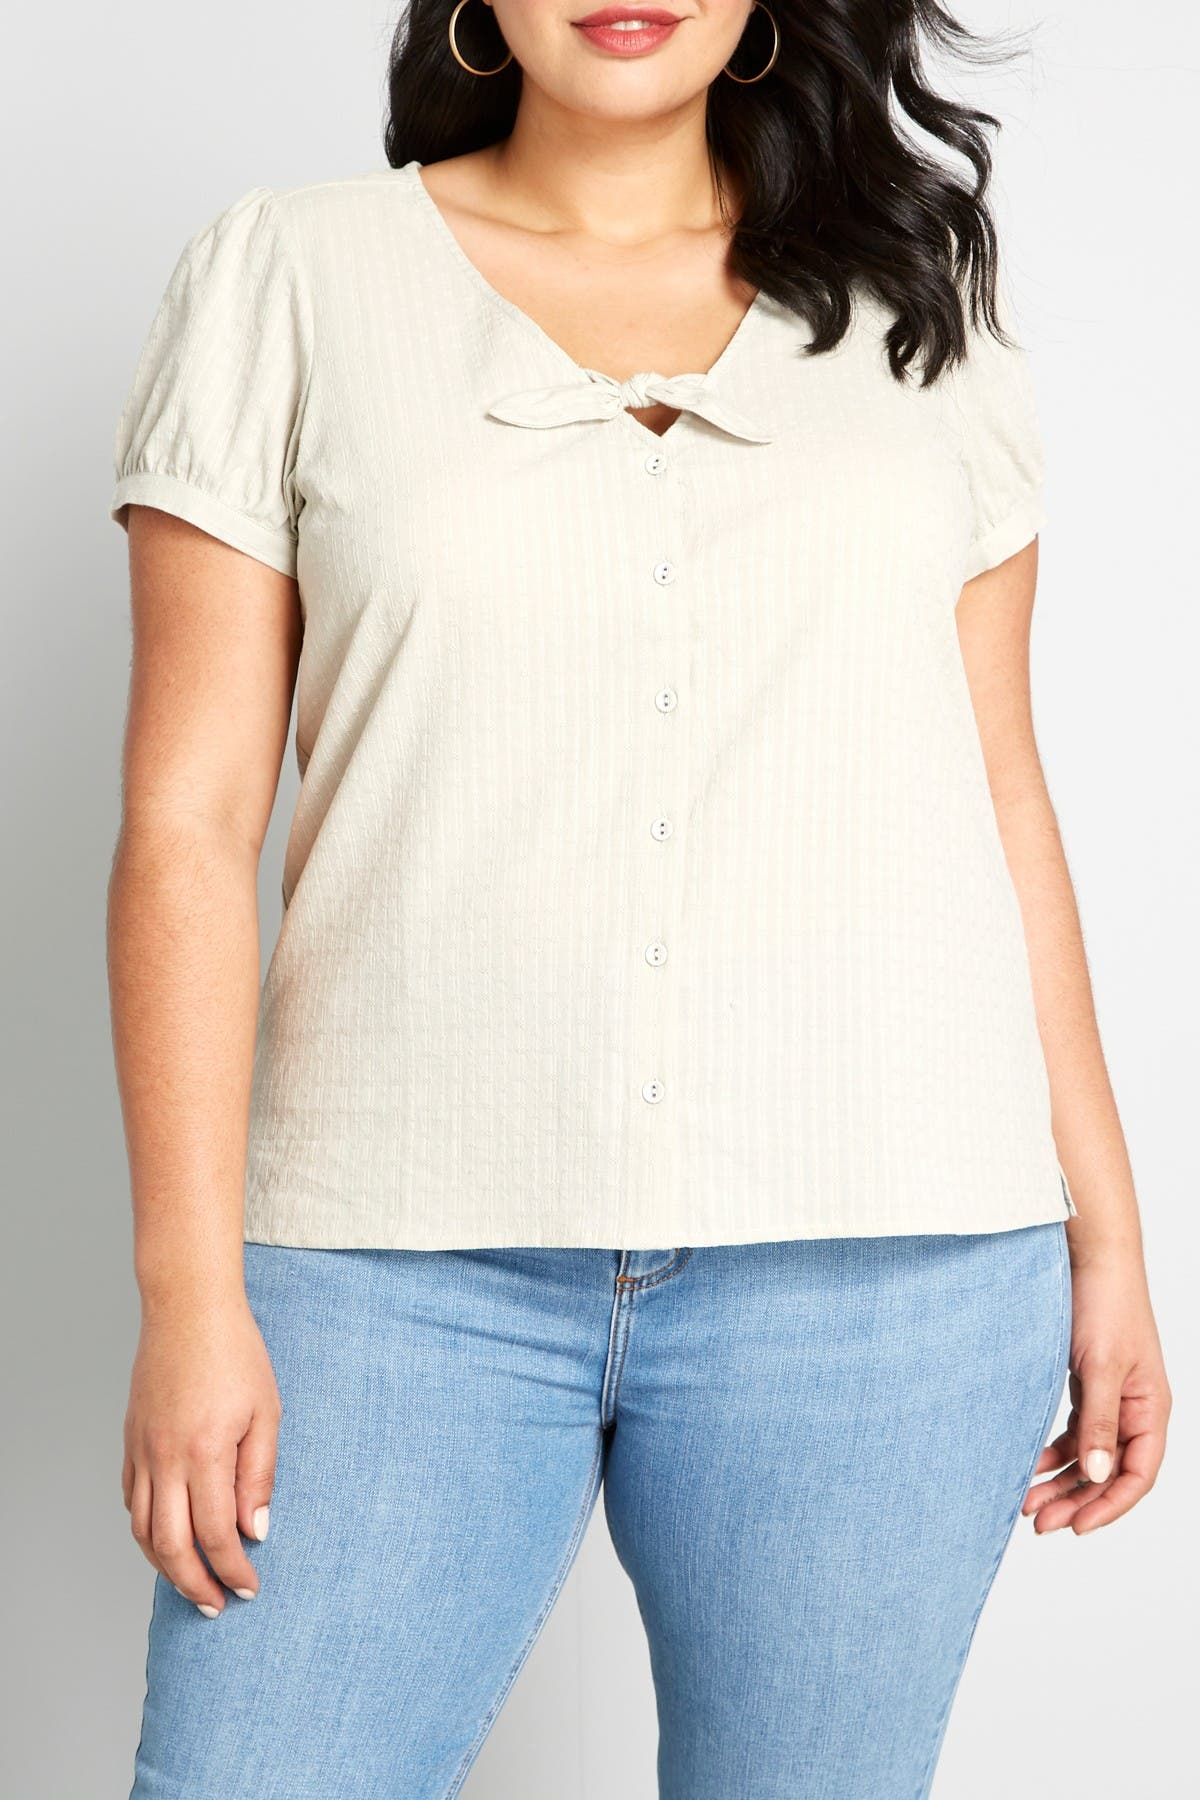 Image of MODCLOTH Polished Touch Short Sleeve Shirt